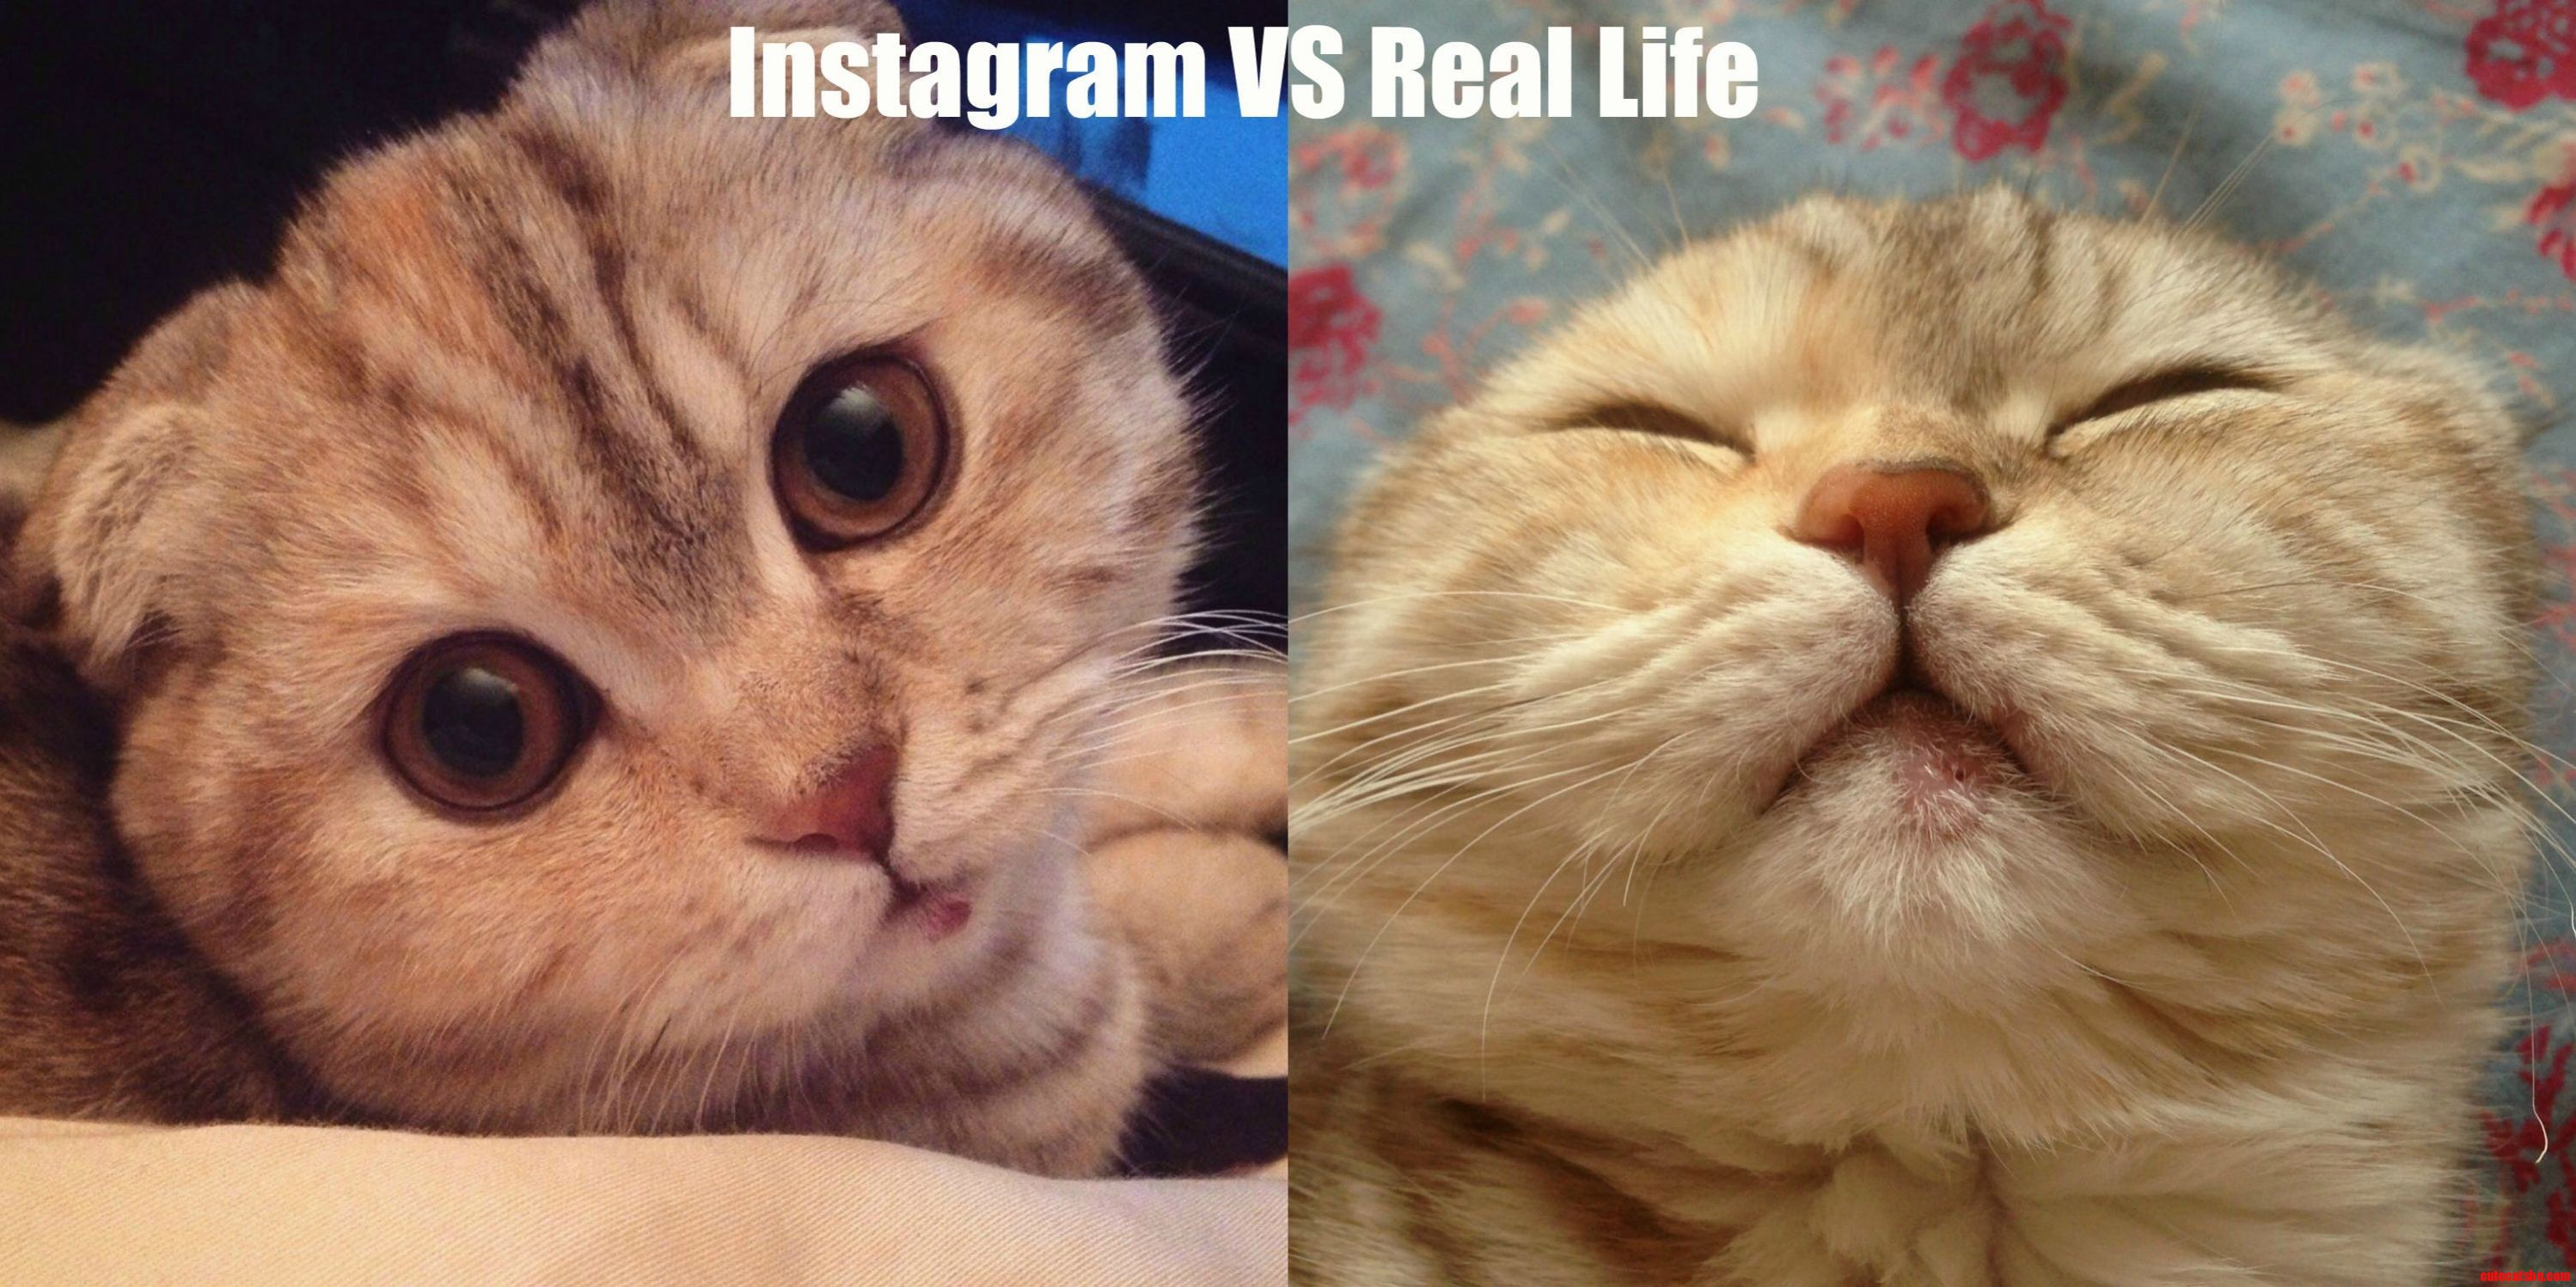 Instagram vs real life